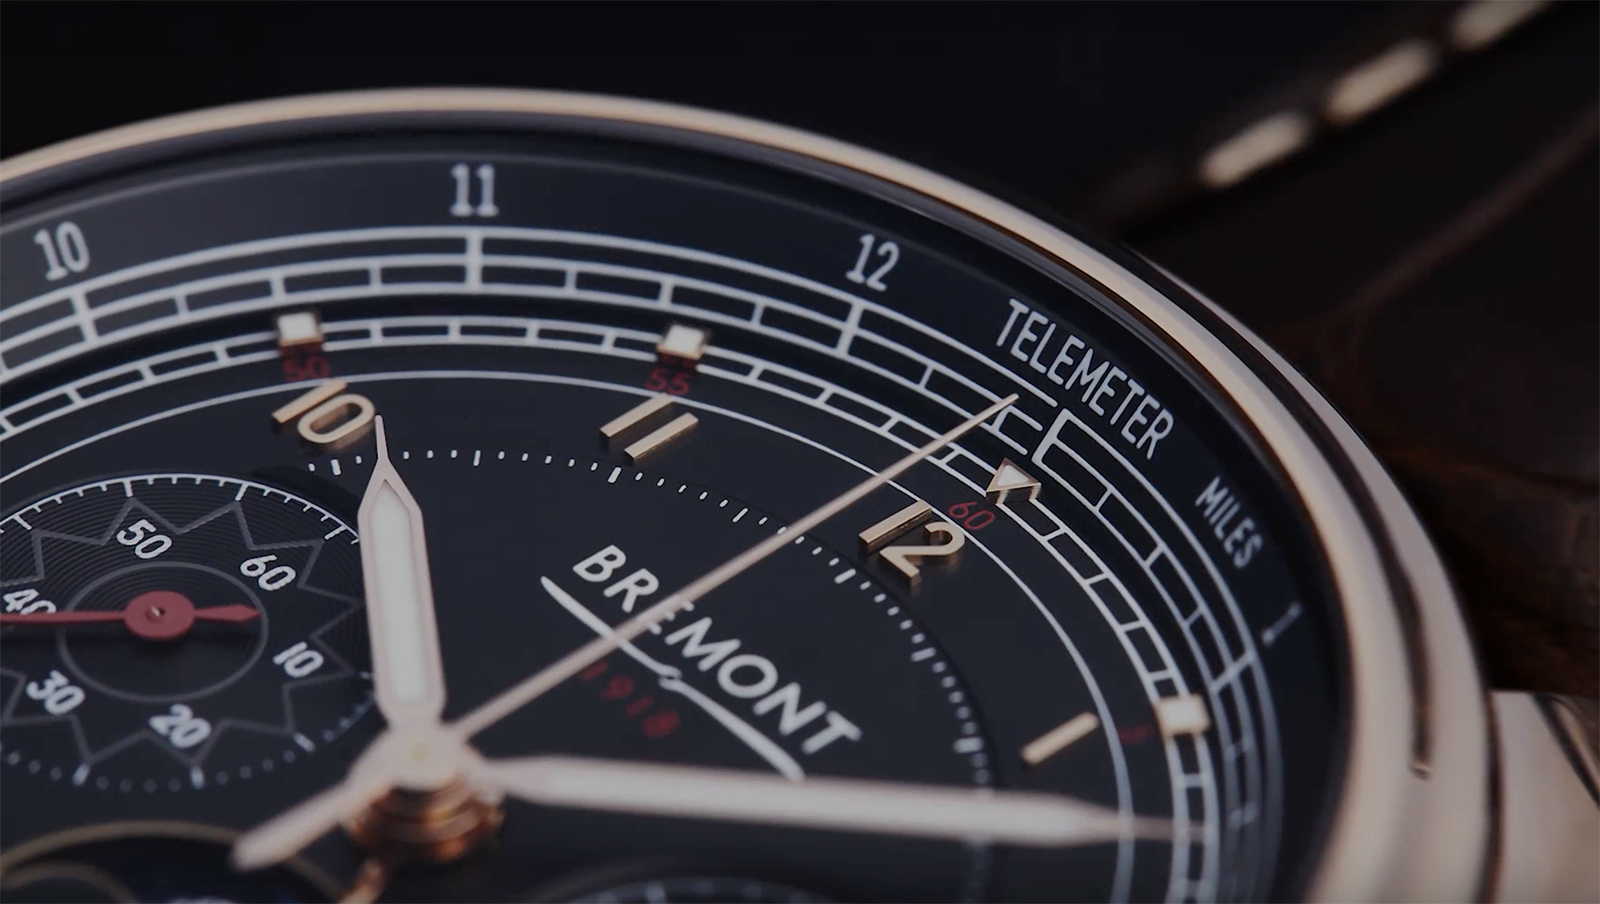 BREMONT 1918 Limited Edition RG